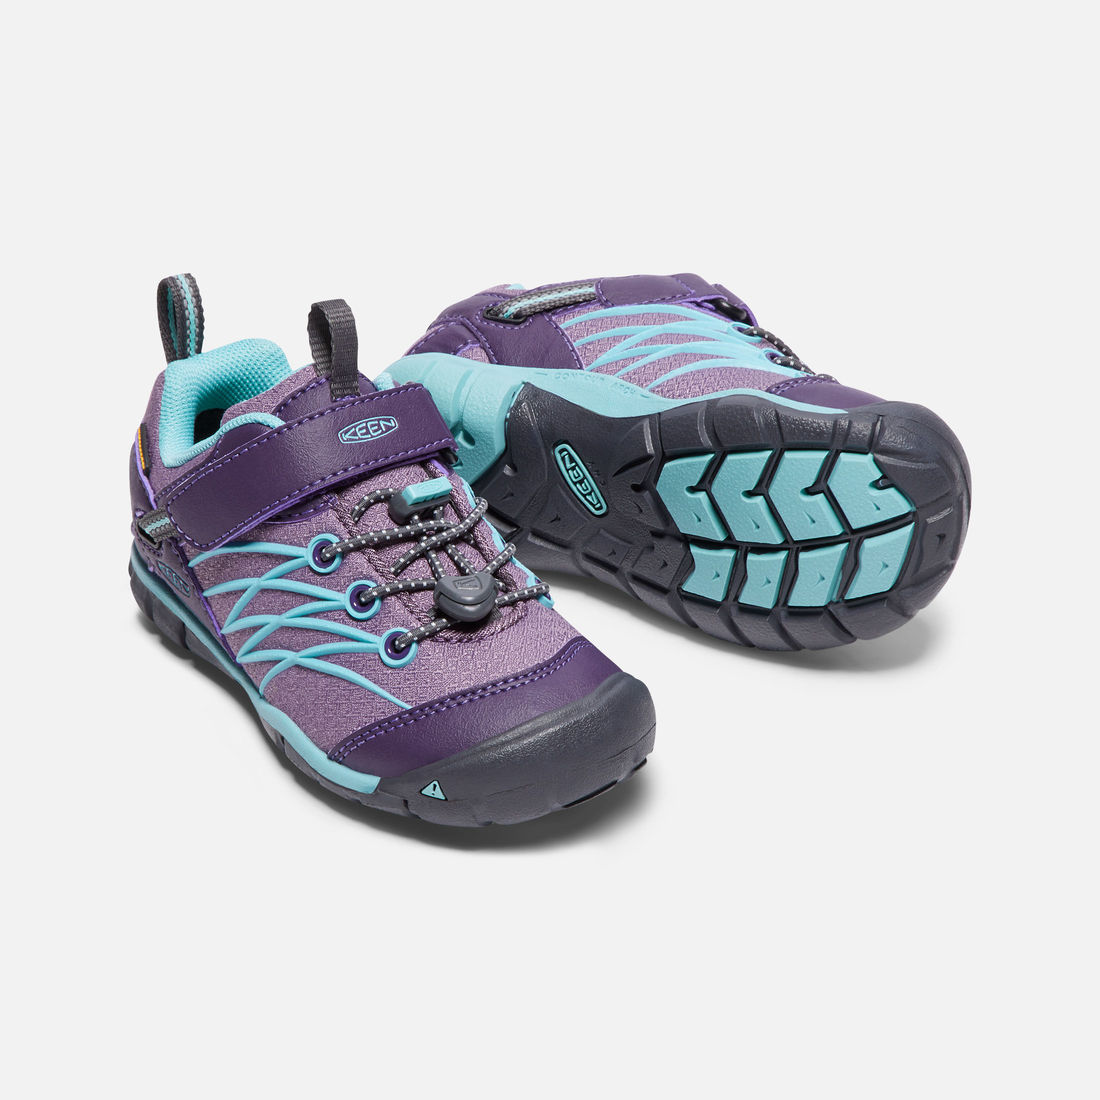 b5f0537808a KEEN Chandler CNX WP, Montana Grape/Aqua Haze (8-13) | Kid Friendly ...